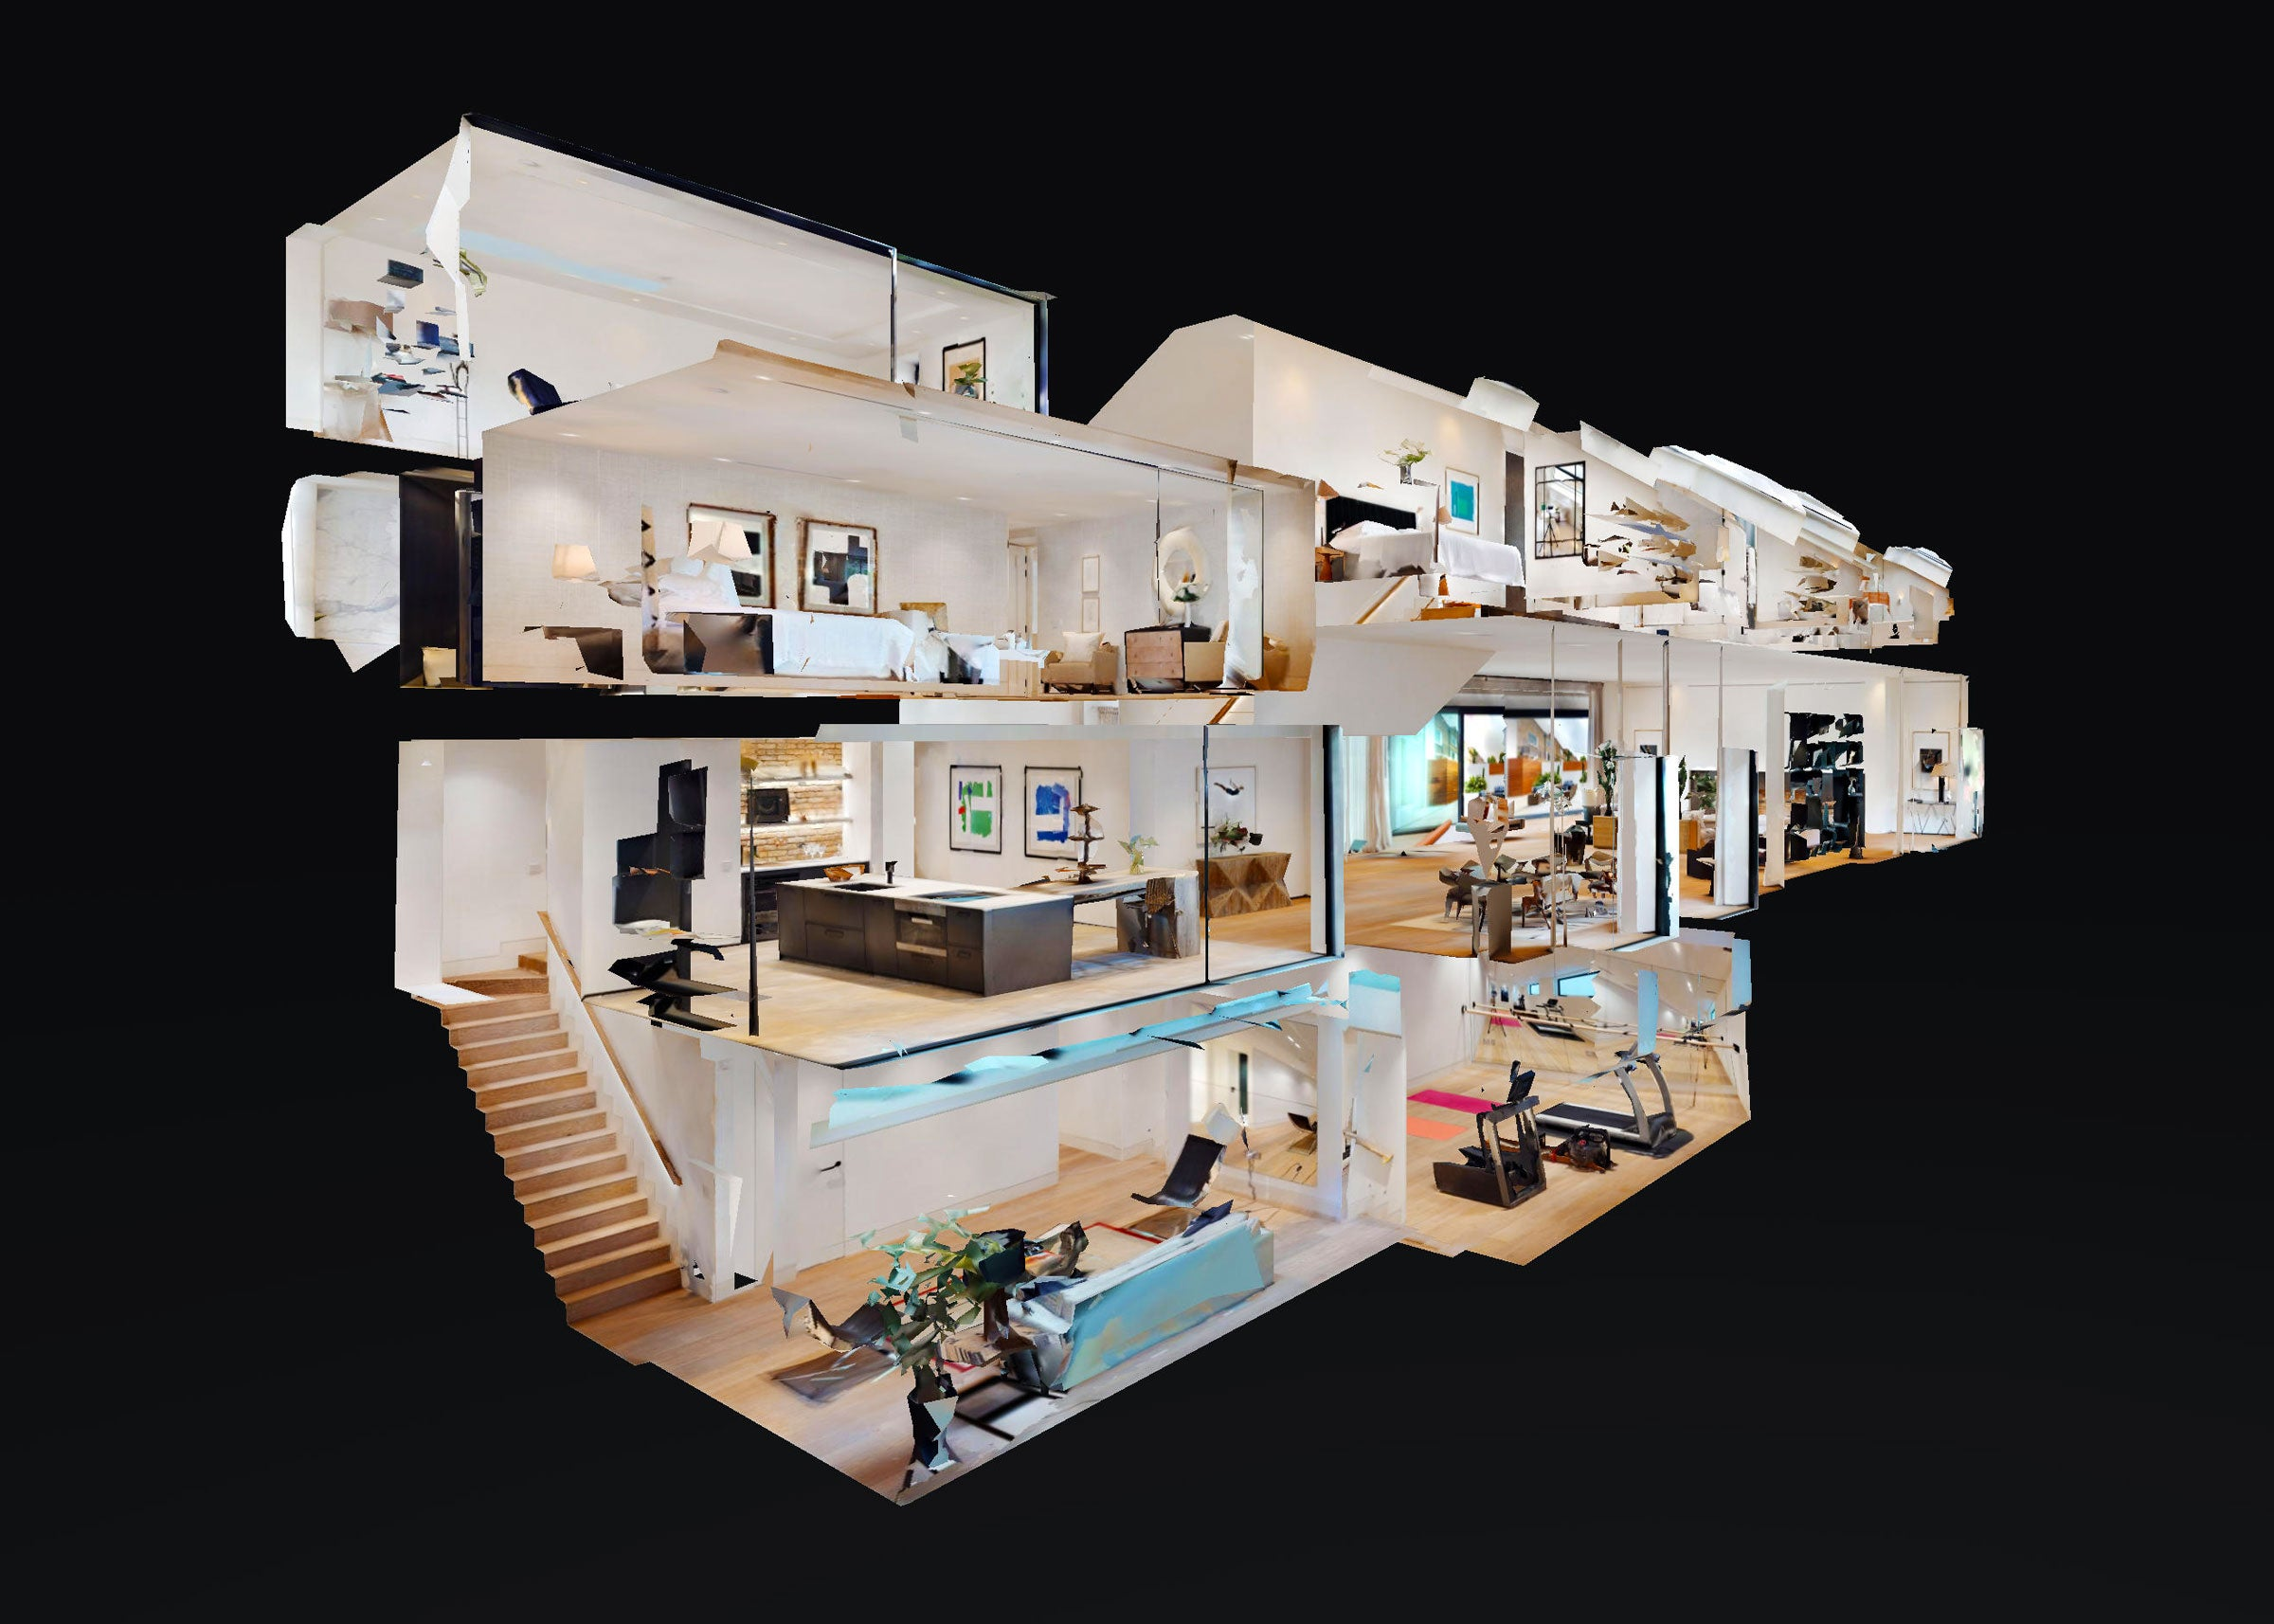 Why Matterport Could Be a Multi-Bagger Stock